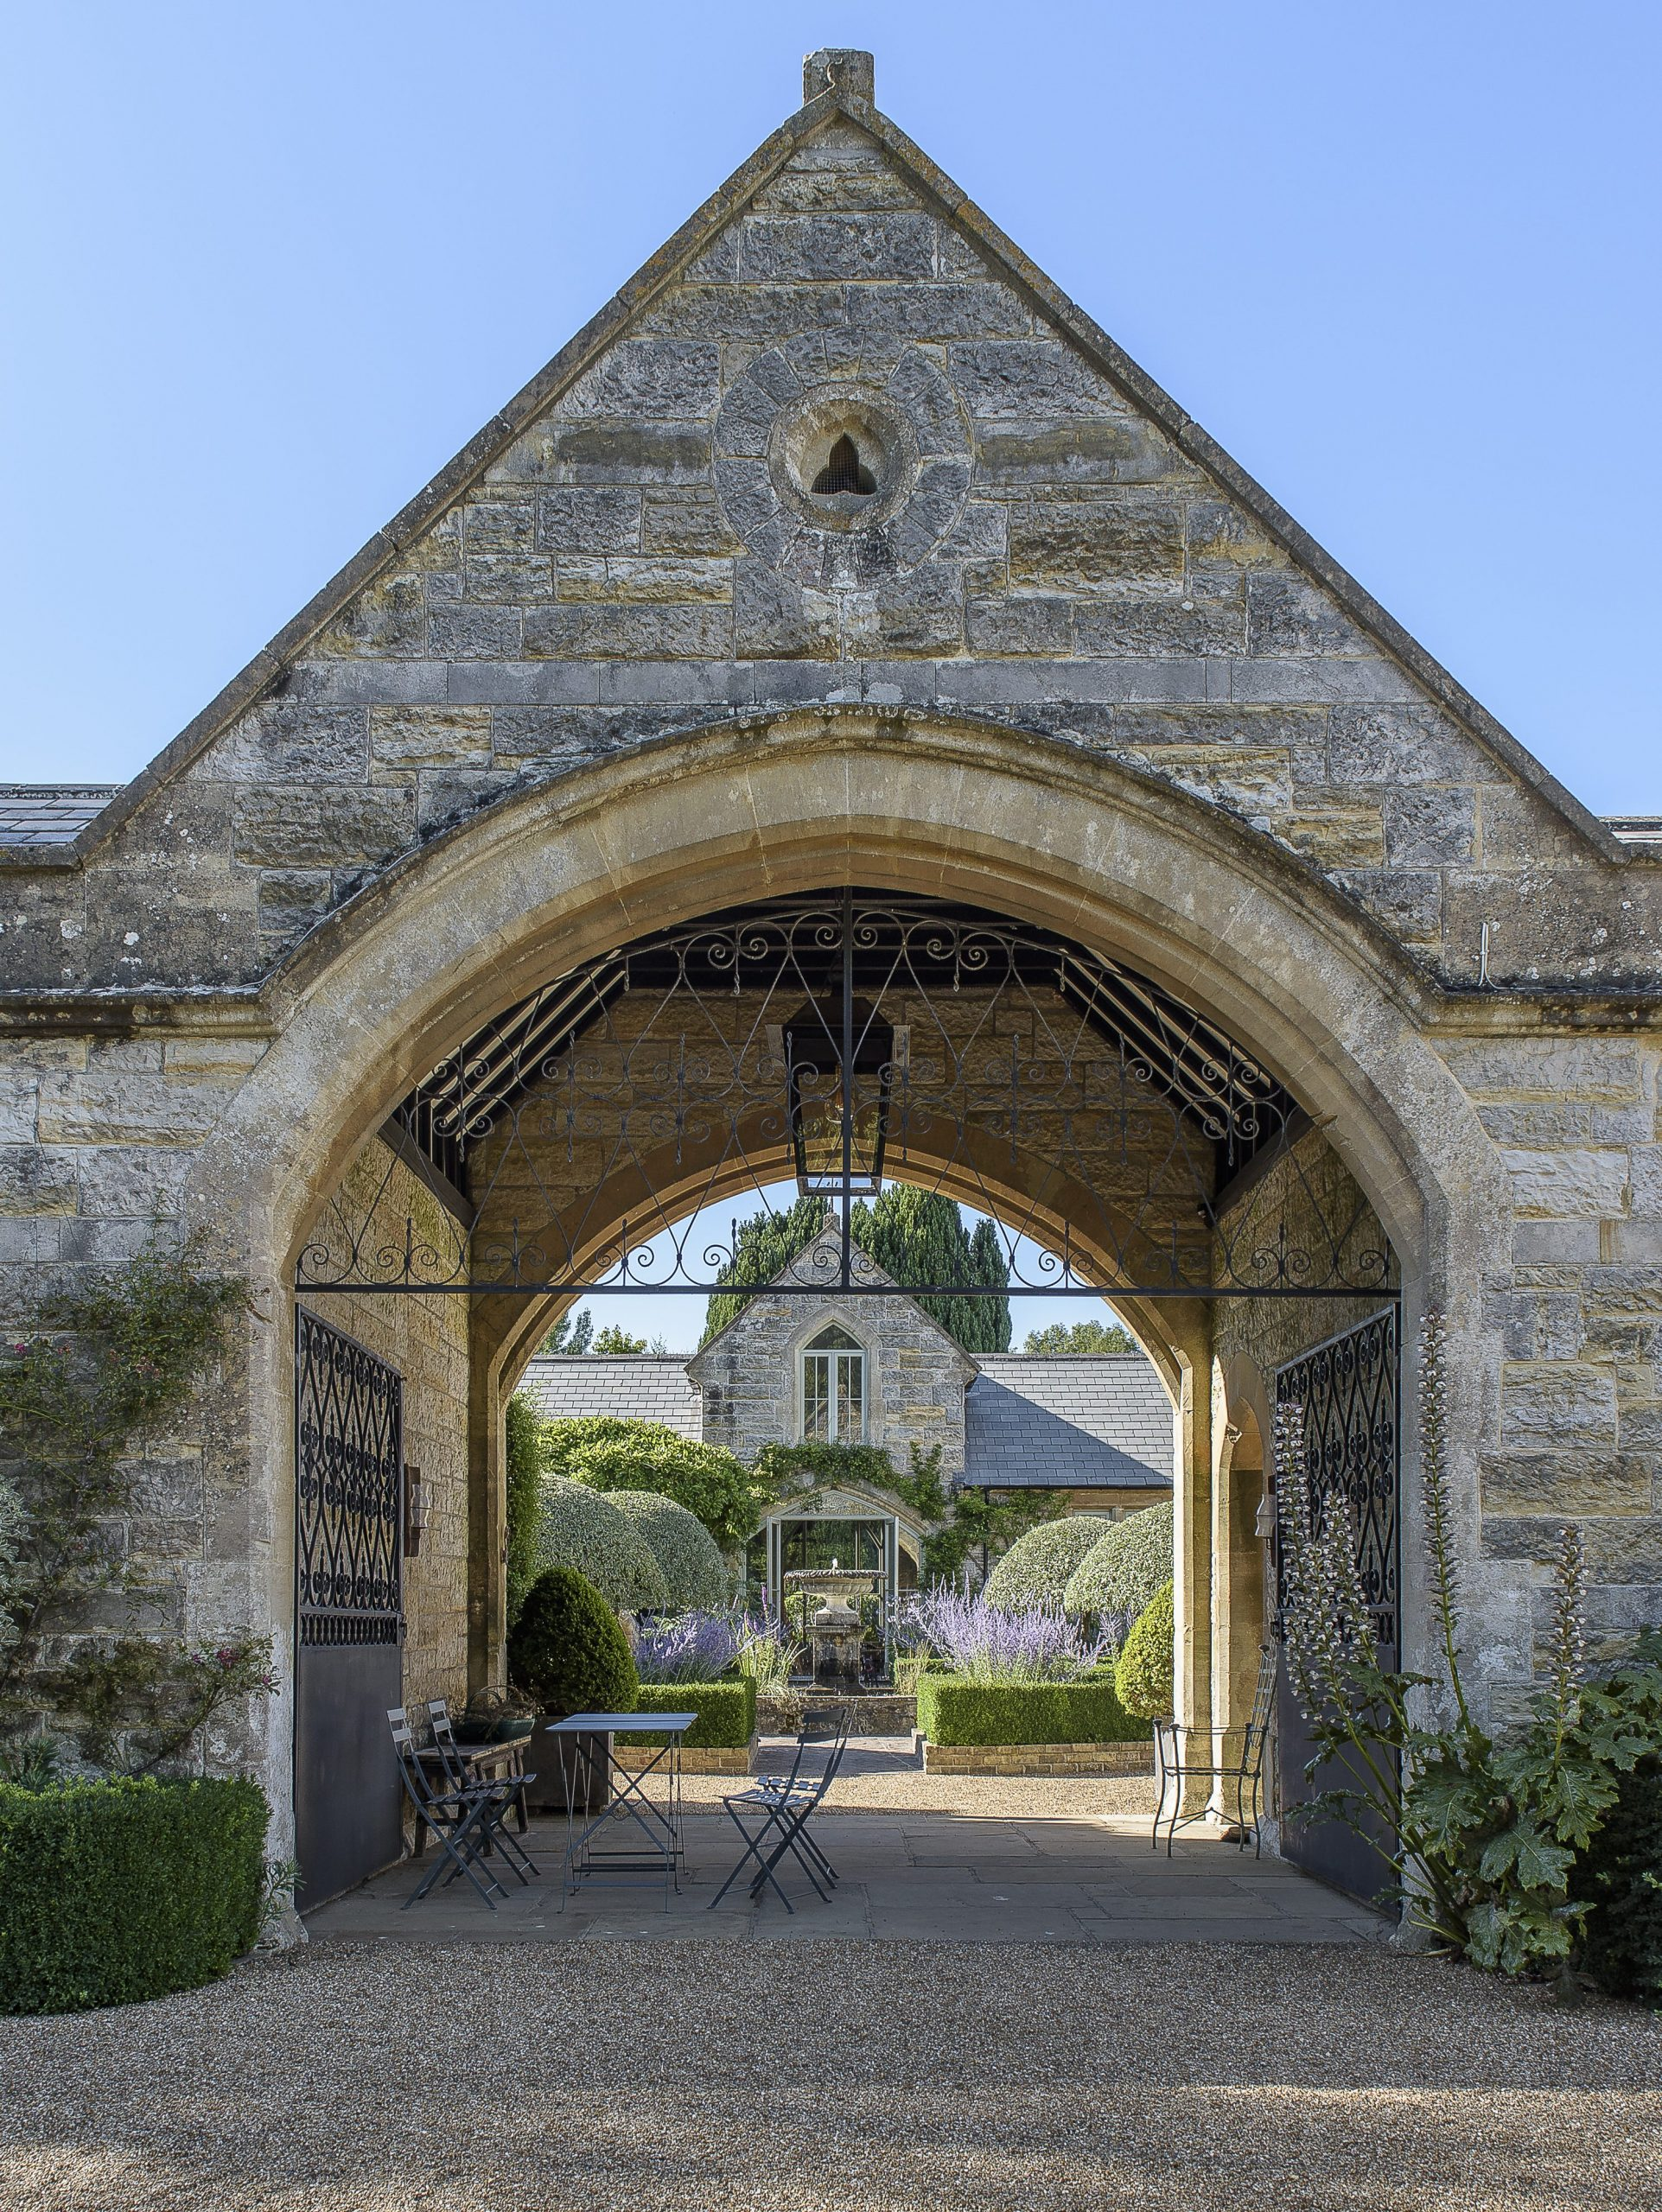 The archway entrance to the Italianate stone courtyard gives views through to the central fountain